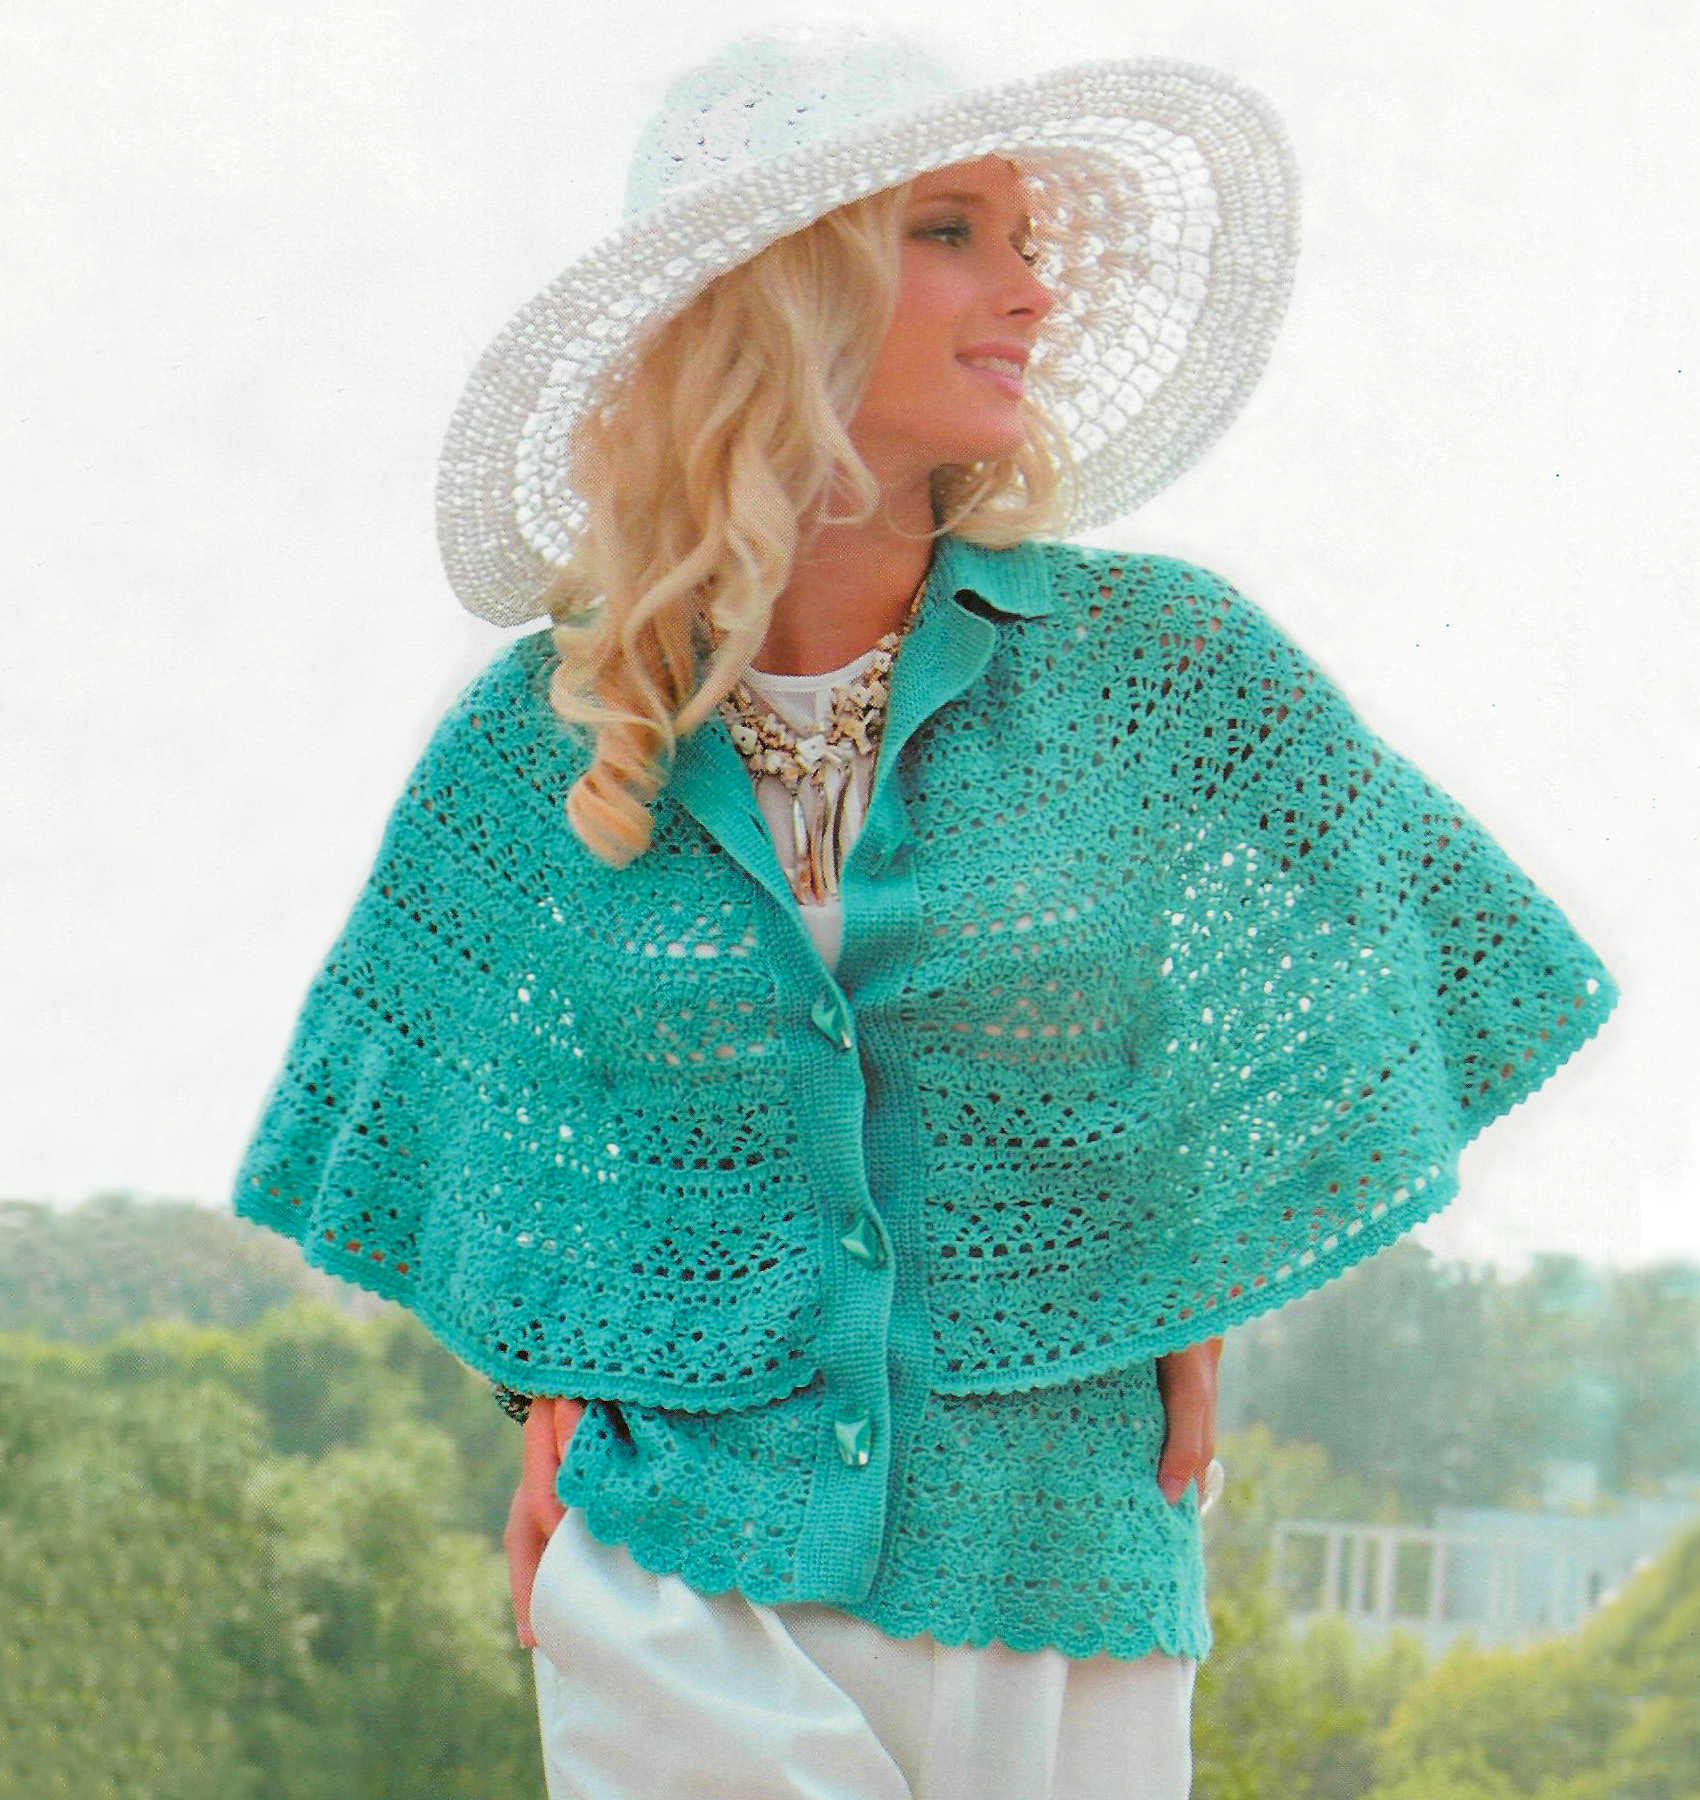 Crochet Patterns Capes : OTHER Capelet (cape) Crochet cape PATTERN, crochet capelet pattern ...